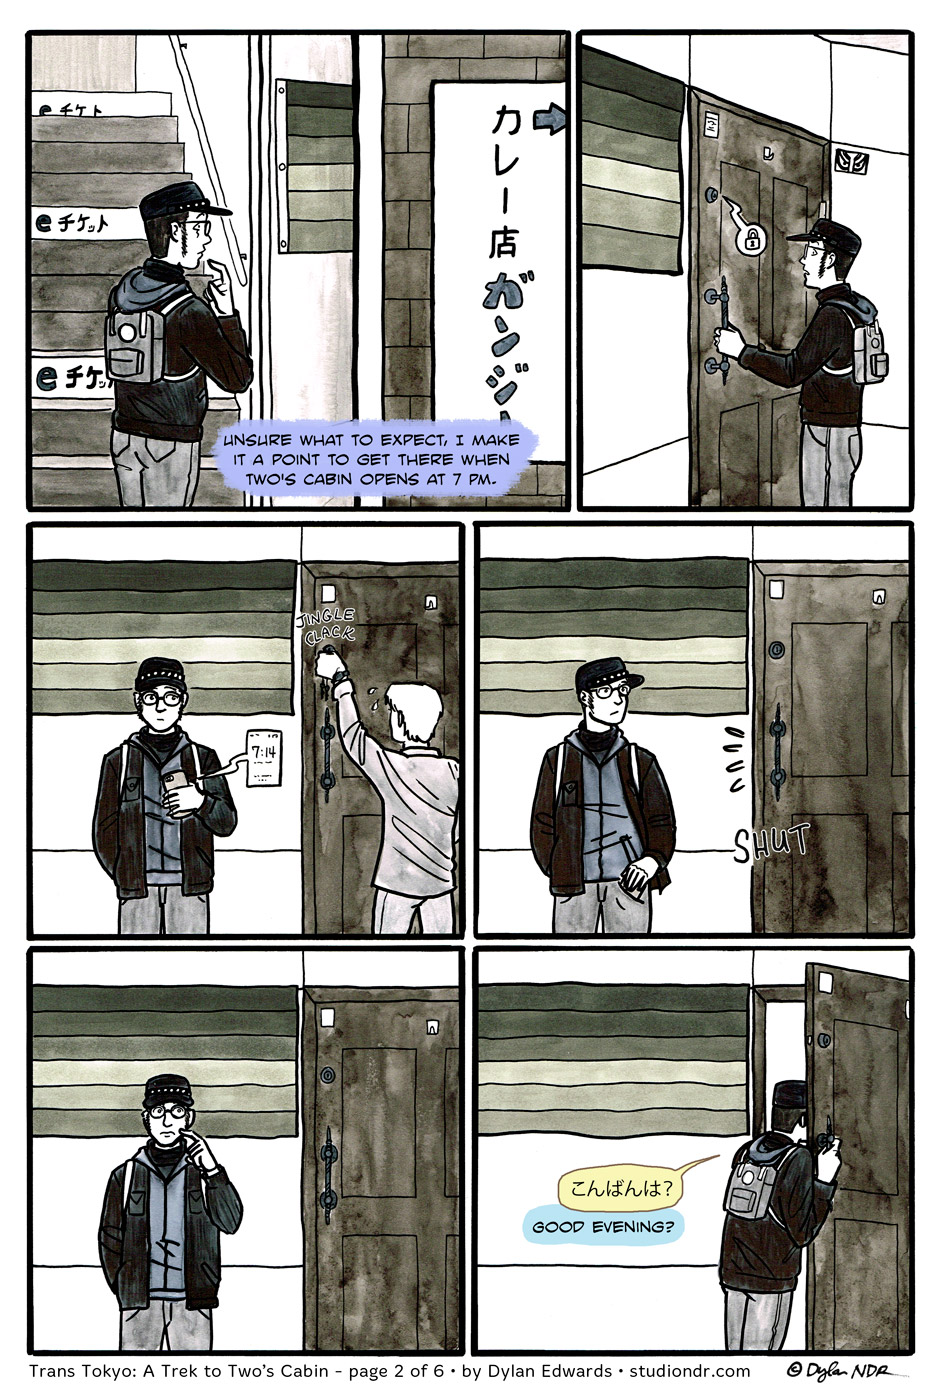 Trans Tokyo: A Trek to Two's Cabin – page 2